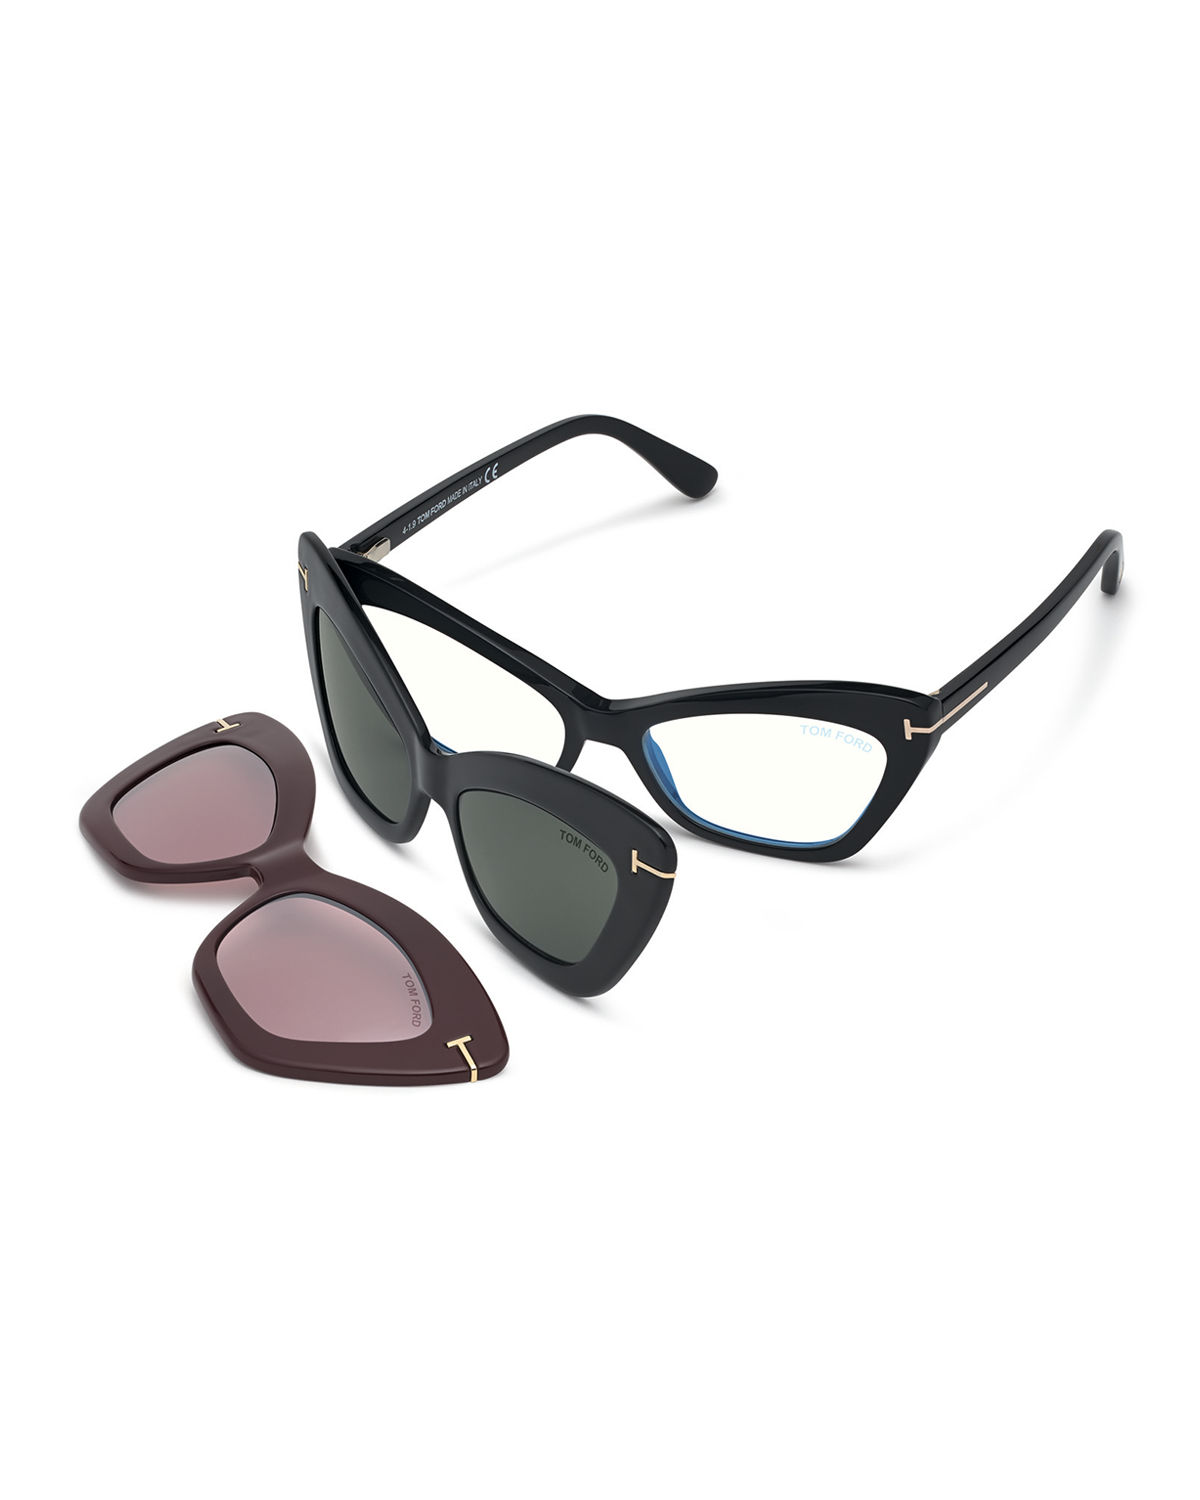 Butterfly Optical Frames w/ Two Magnetic Sunglasses Clips